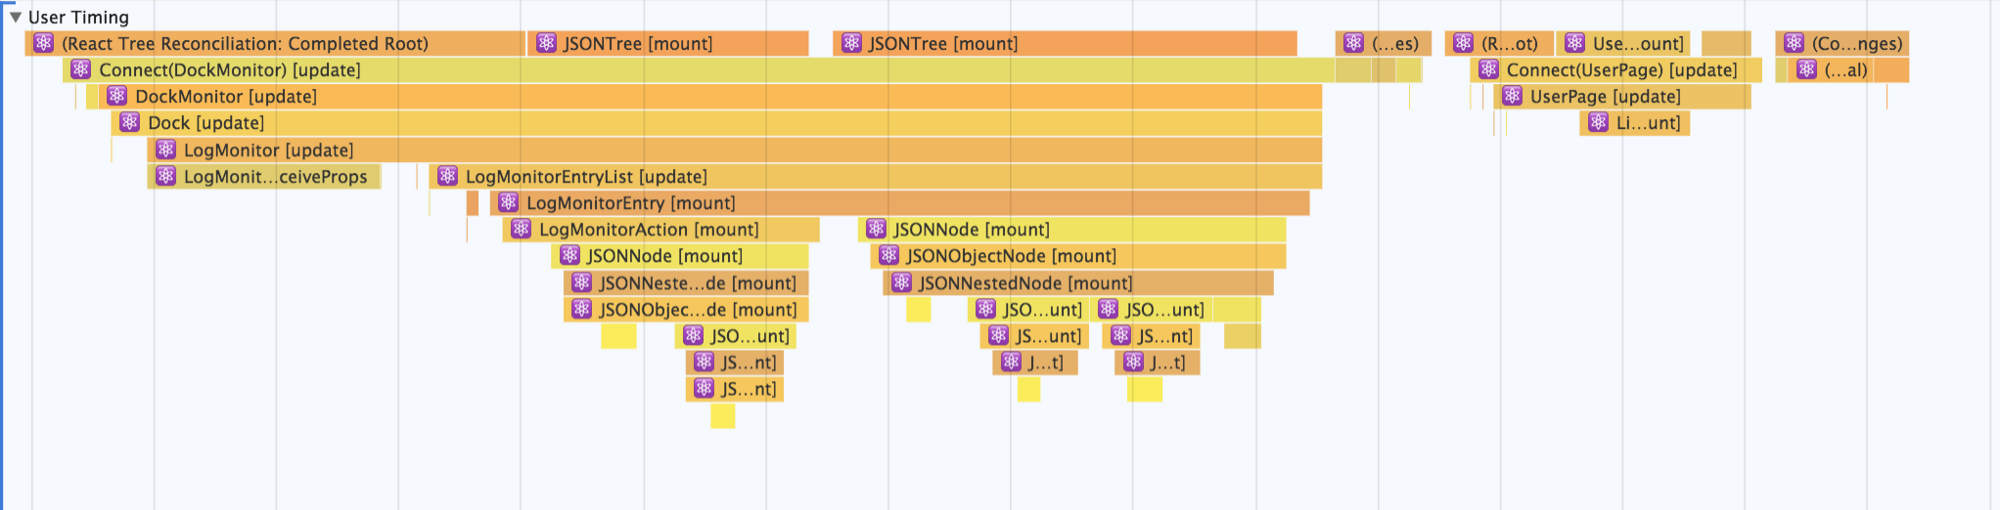 The same flame chart with React's user timing details